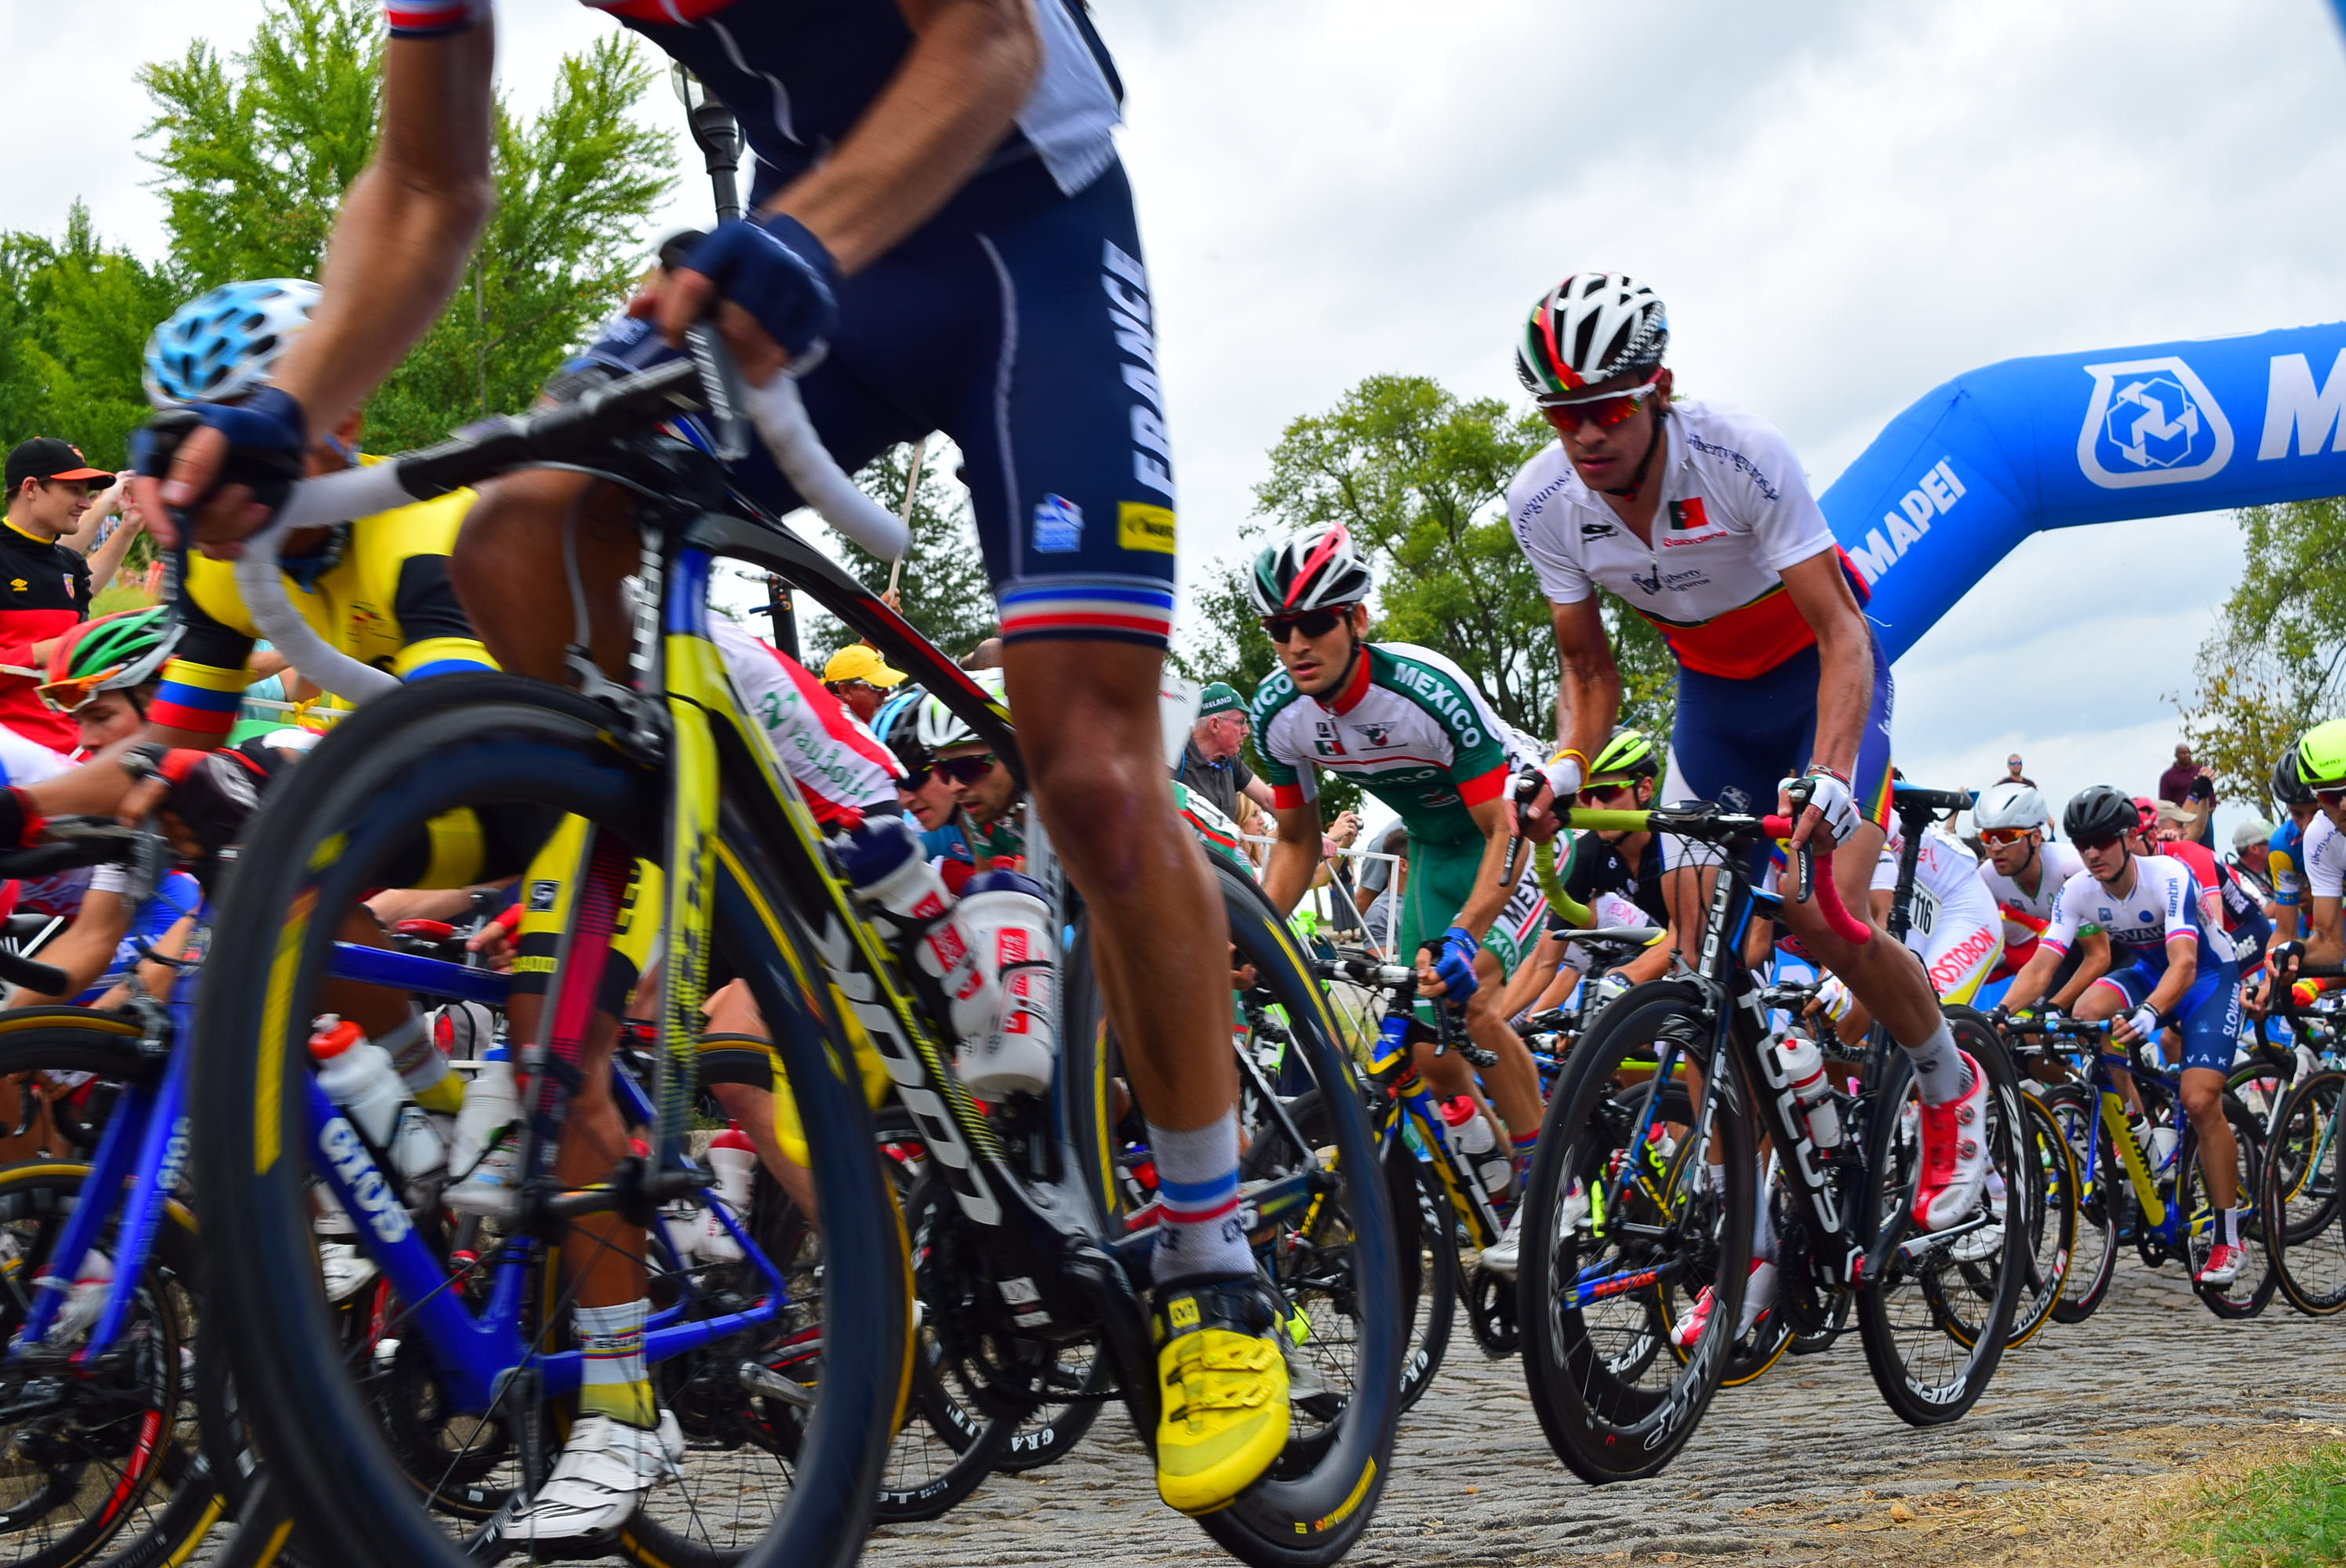 World Road Cycling Championships